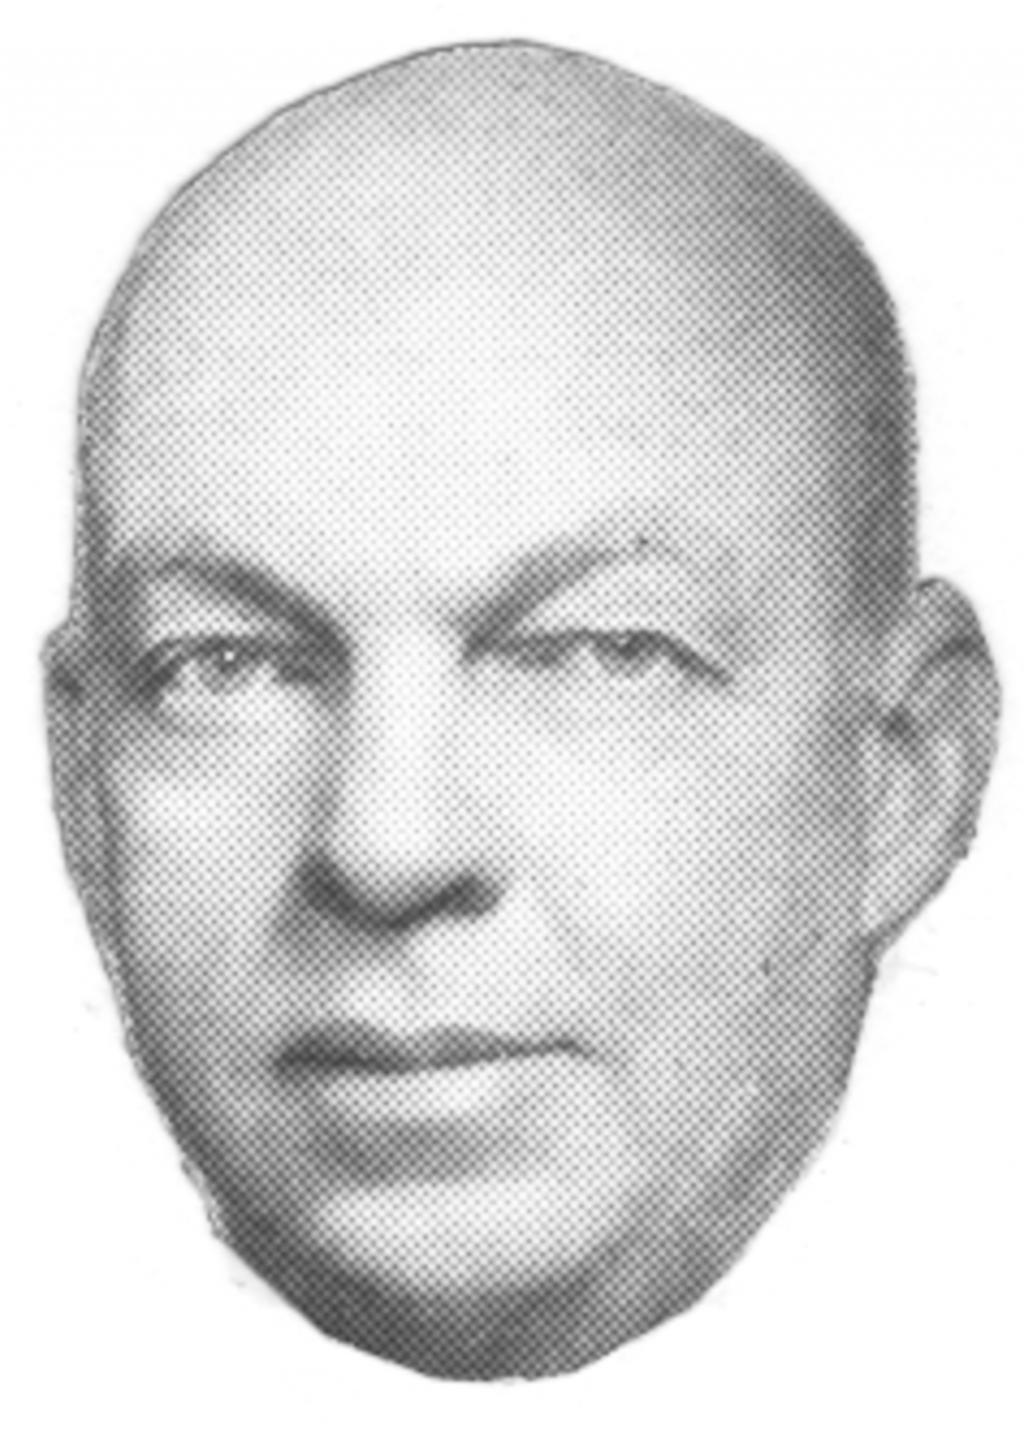 The face of Edwin H. Armstrong